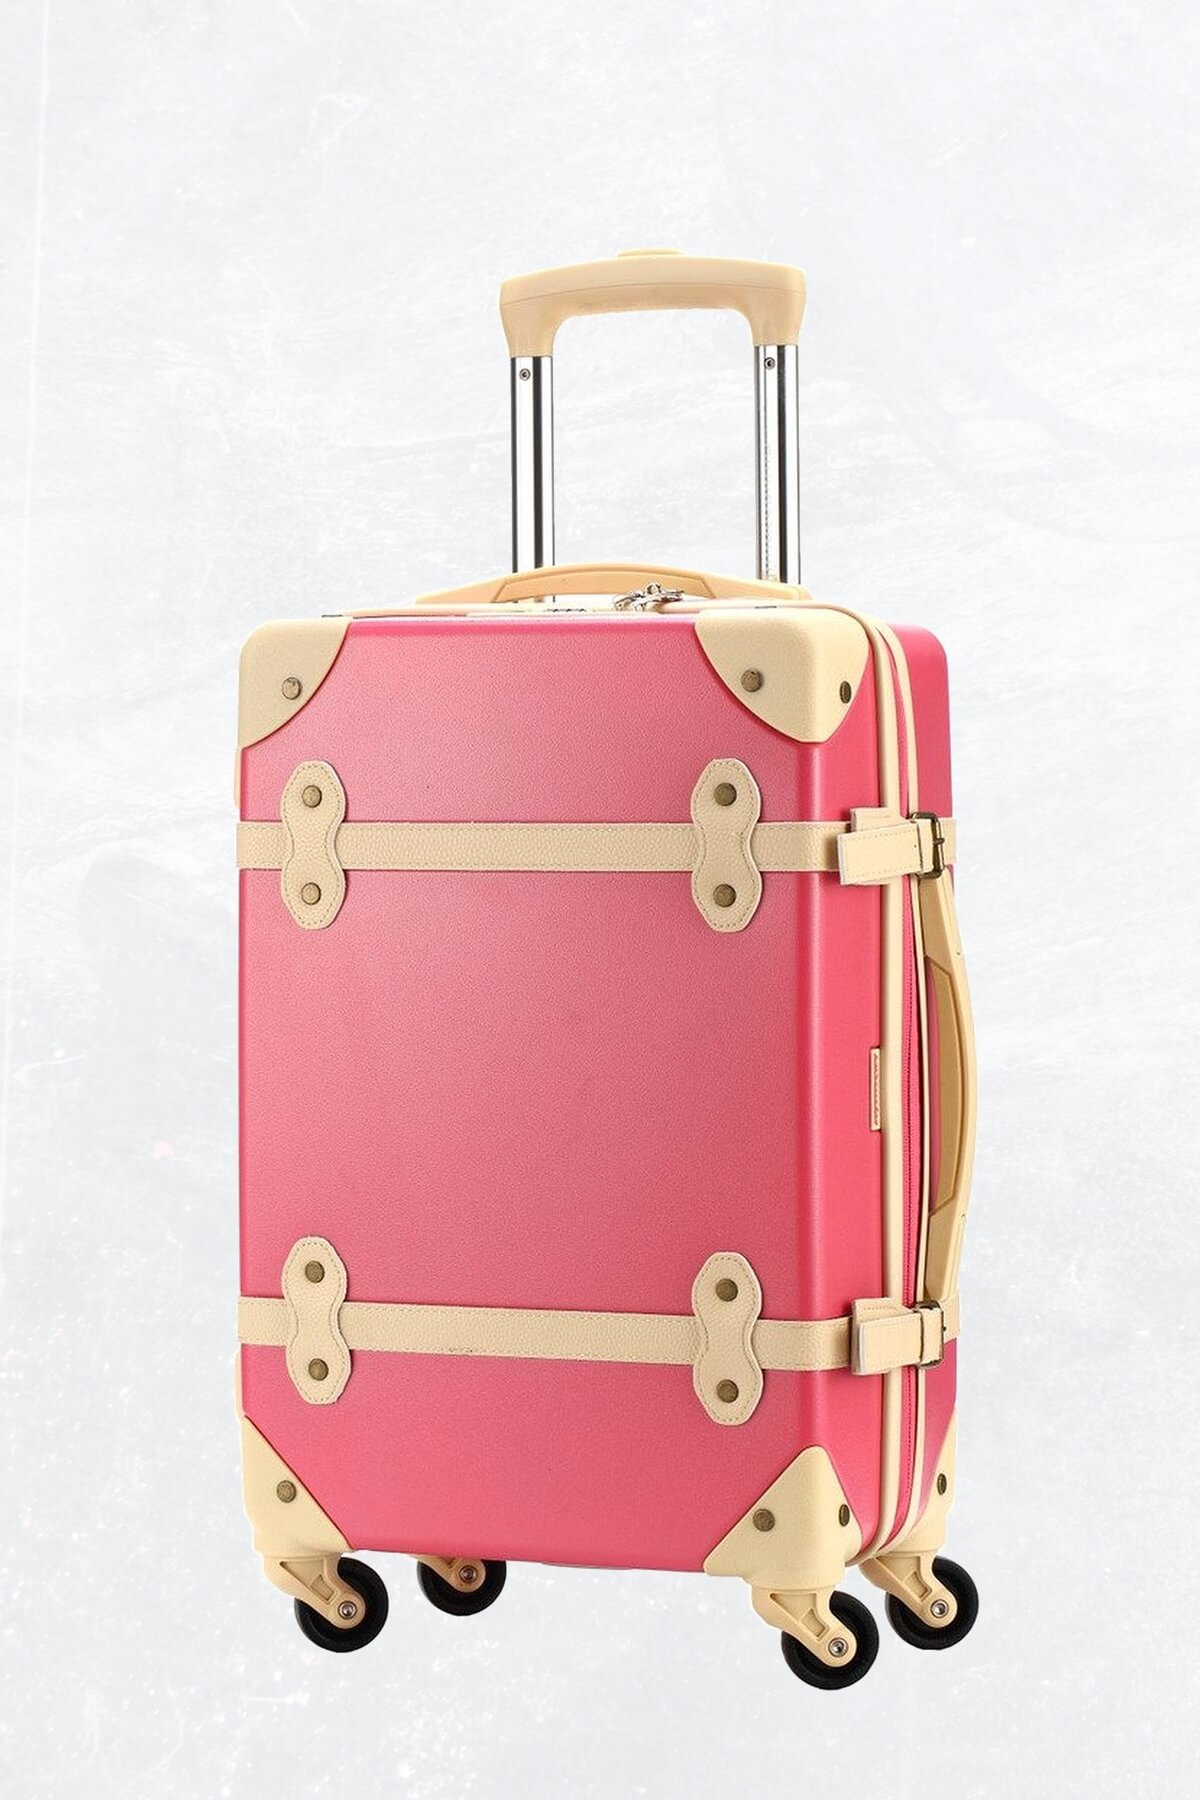 Ambassador Luggage Antique, pink luggage